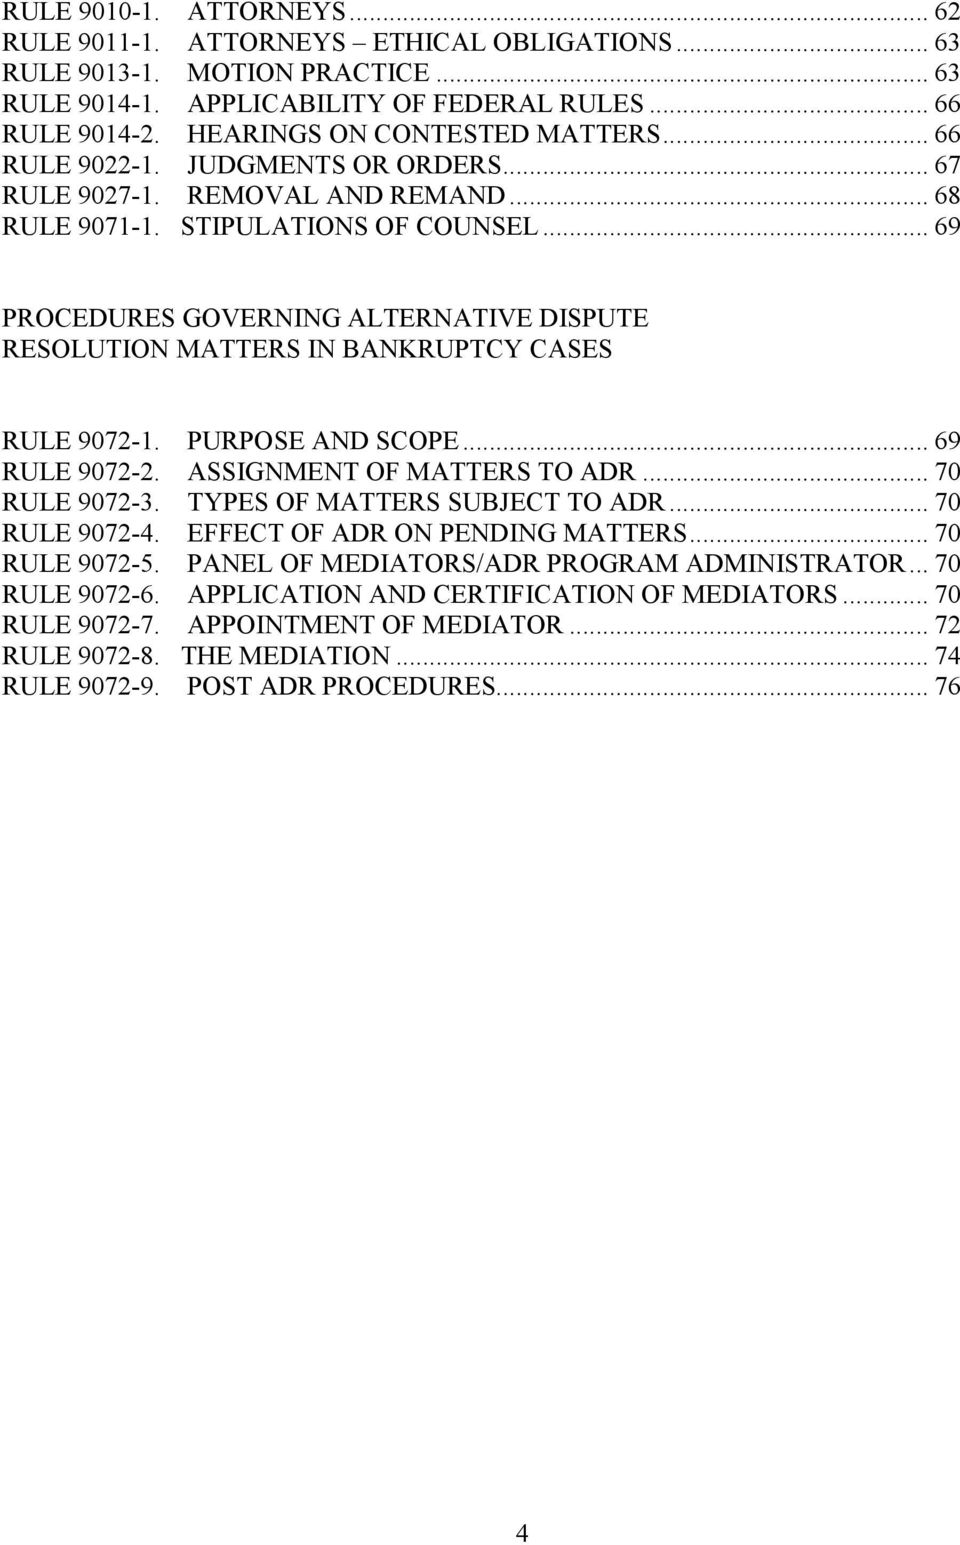 .. 69 PROCEDURES GOVERNING ALTERNATIVE DISPUTE RESOLUTION MATTERS IN BANKRUPTCY CASES RULE 9072-1. PURPOSE AND SCOPE... 69 RULE 9072-2. ASSIGNMENT OF MATTERS TO ADR... 70 RULE 9072-3.